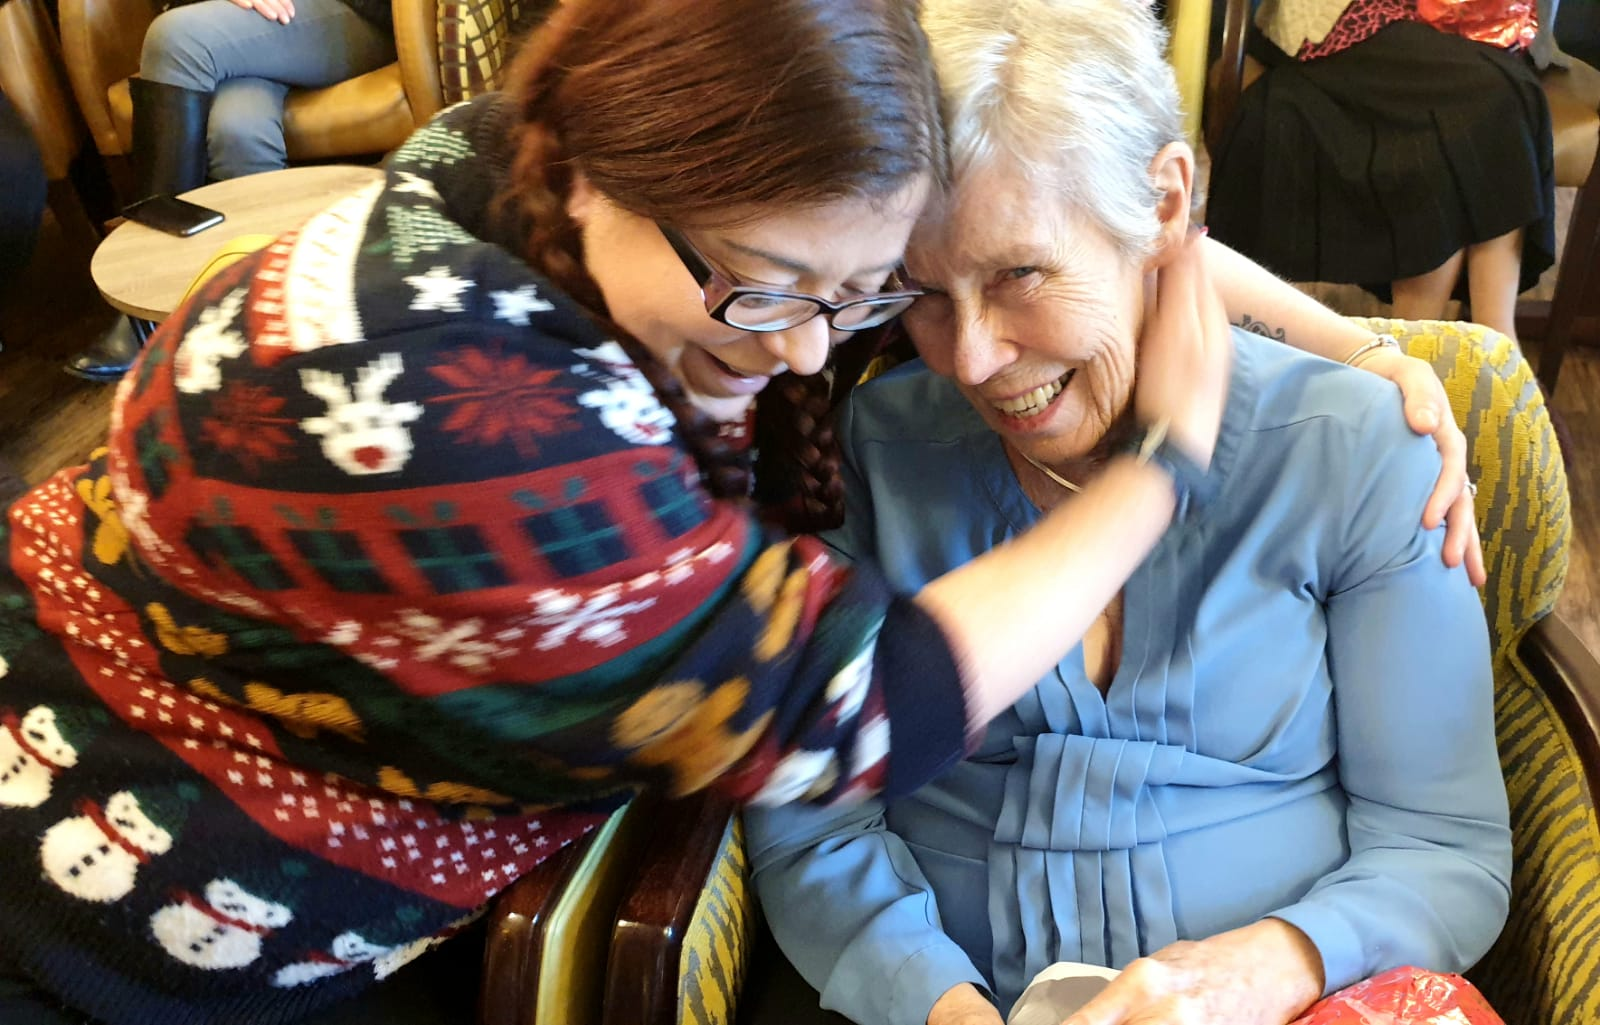 Making Friends & Delivering Gifts at Shinfield View Care Home - volunteer and resident embrace